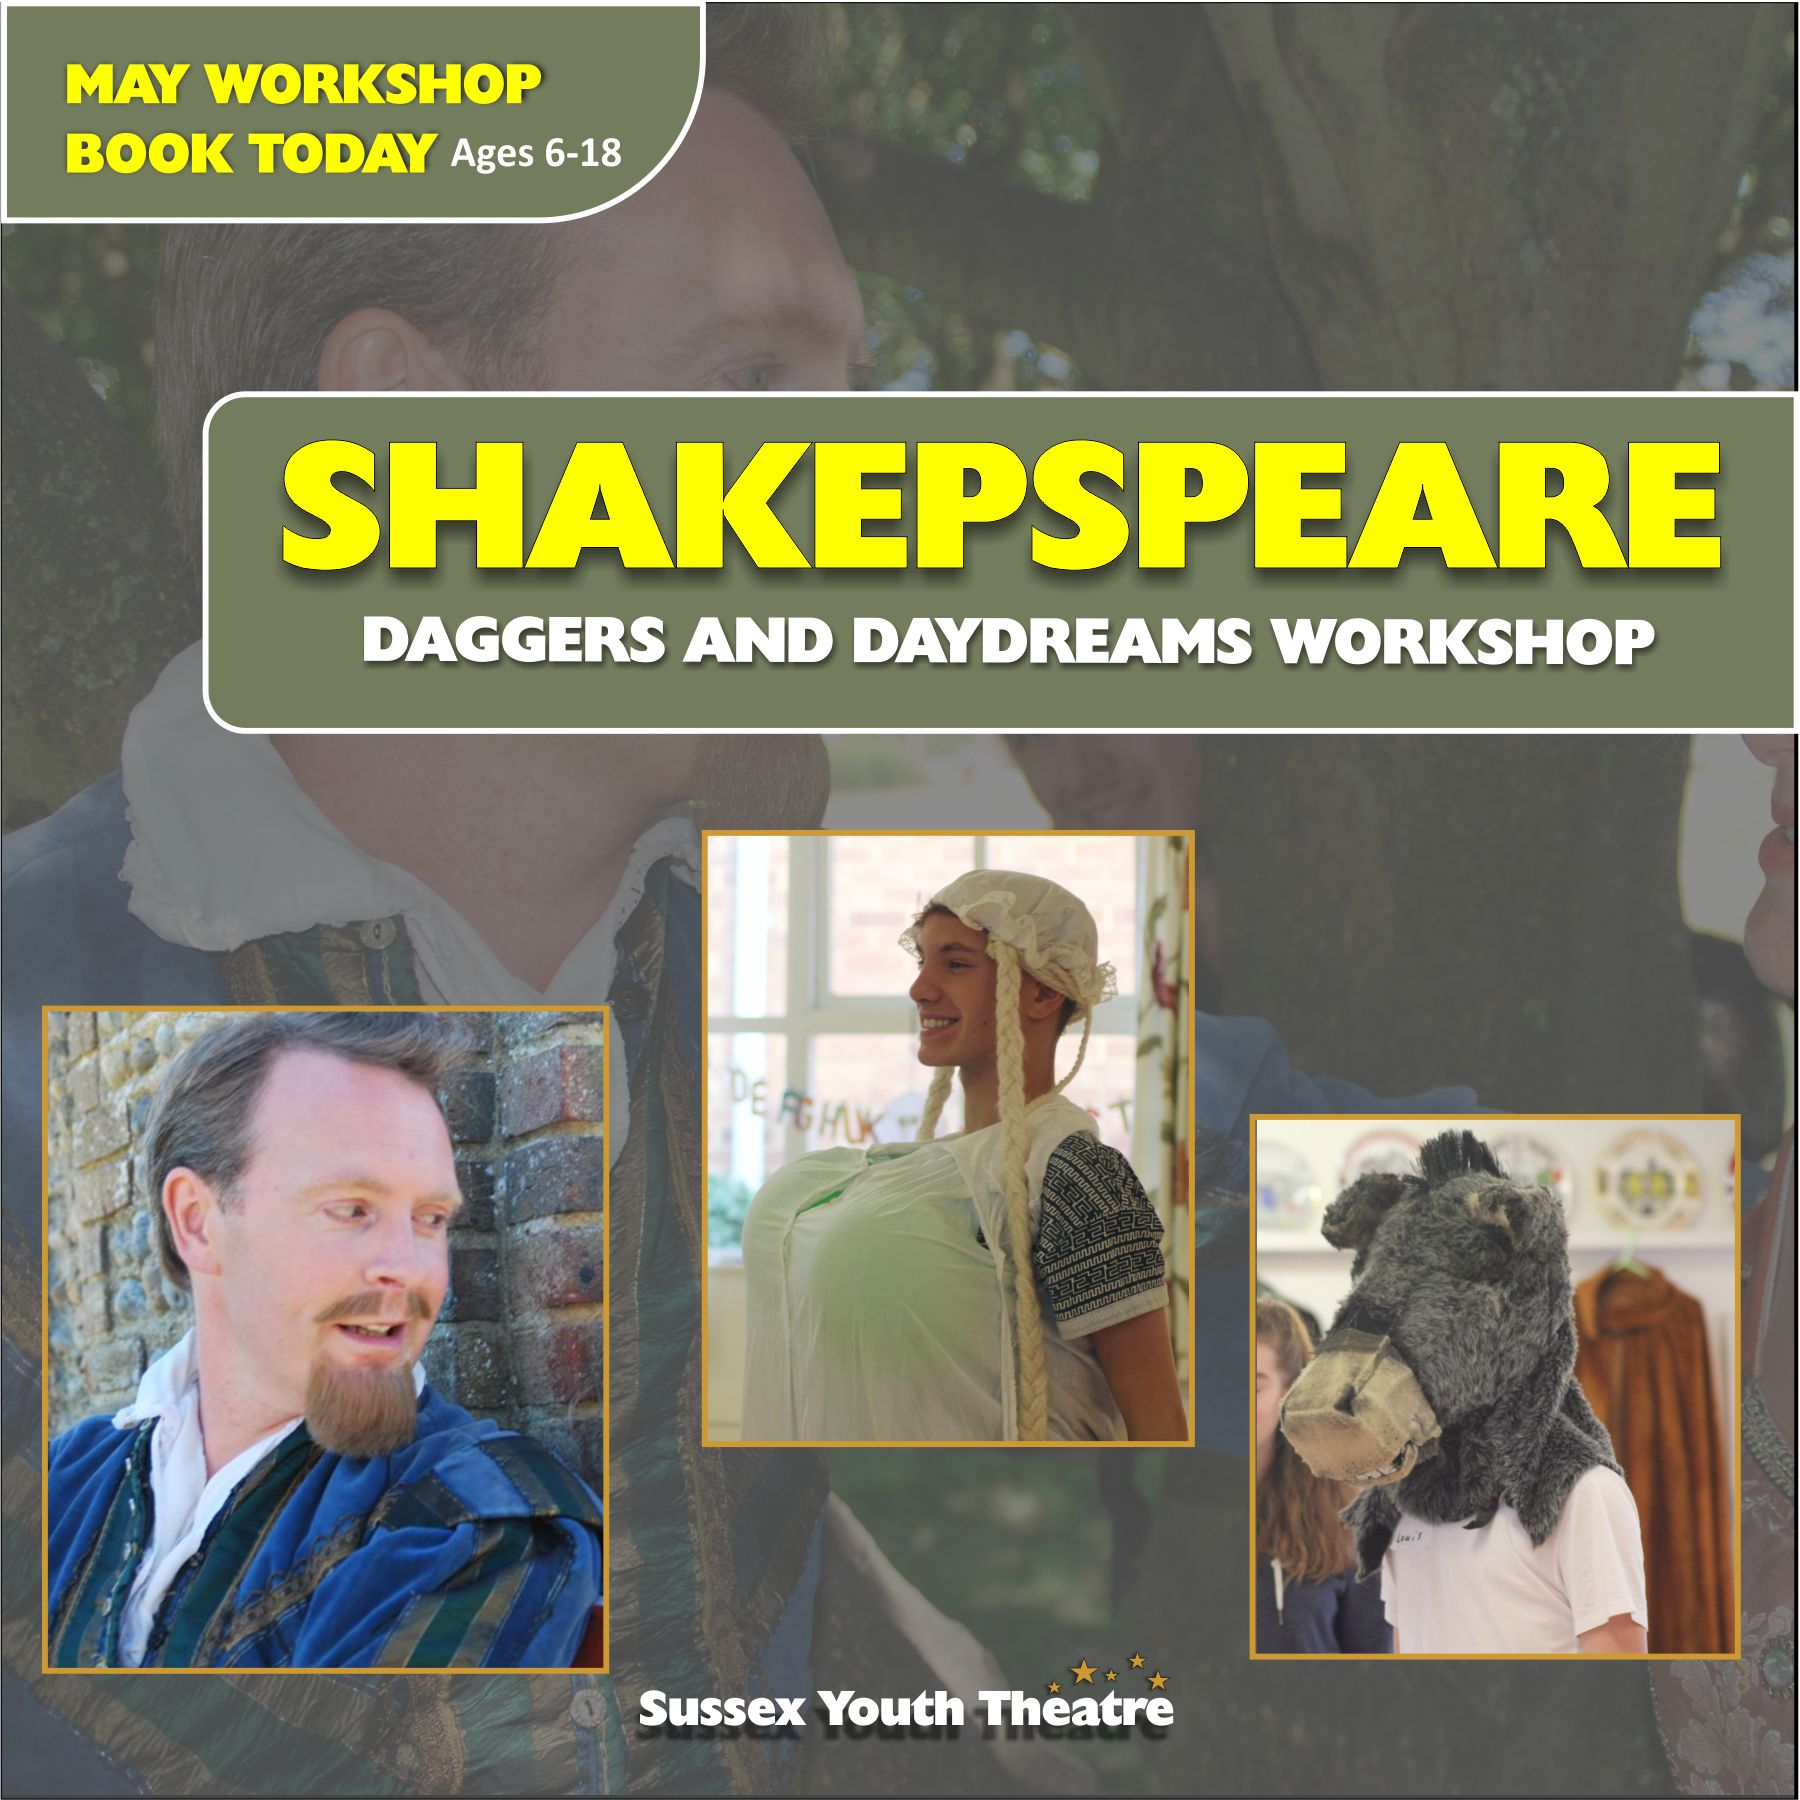 May Shakespeare Workshop 2020 BMOI image